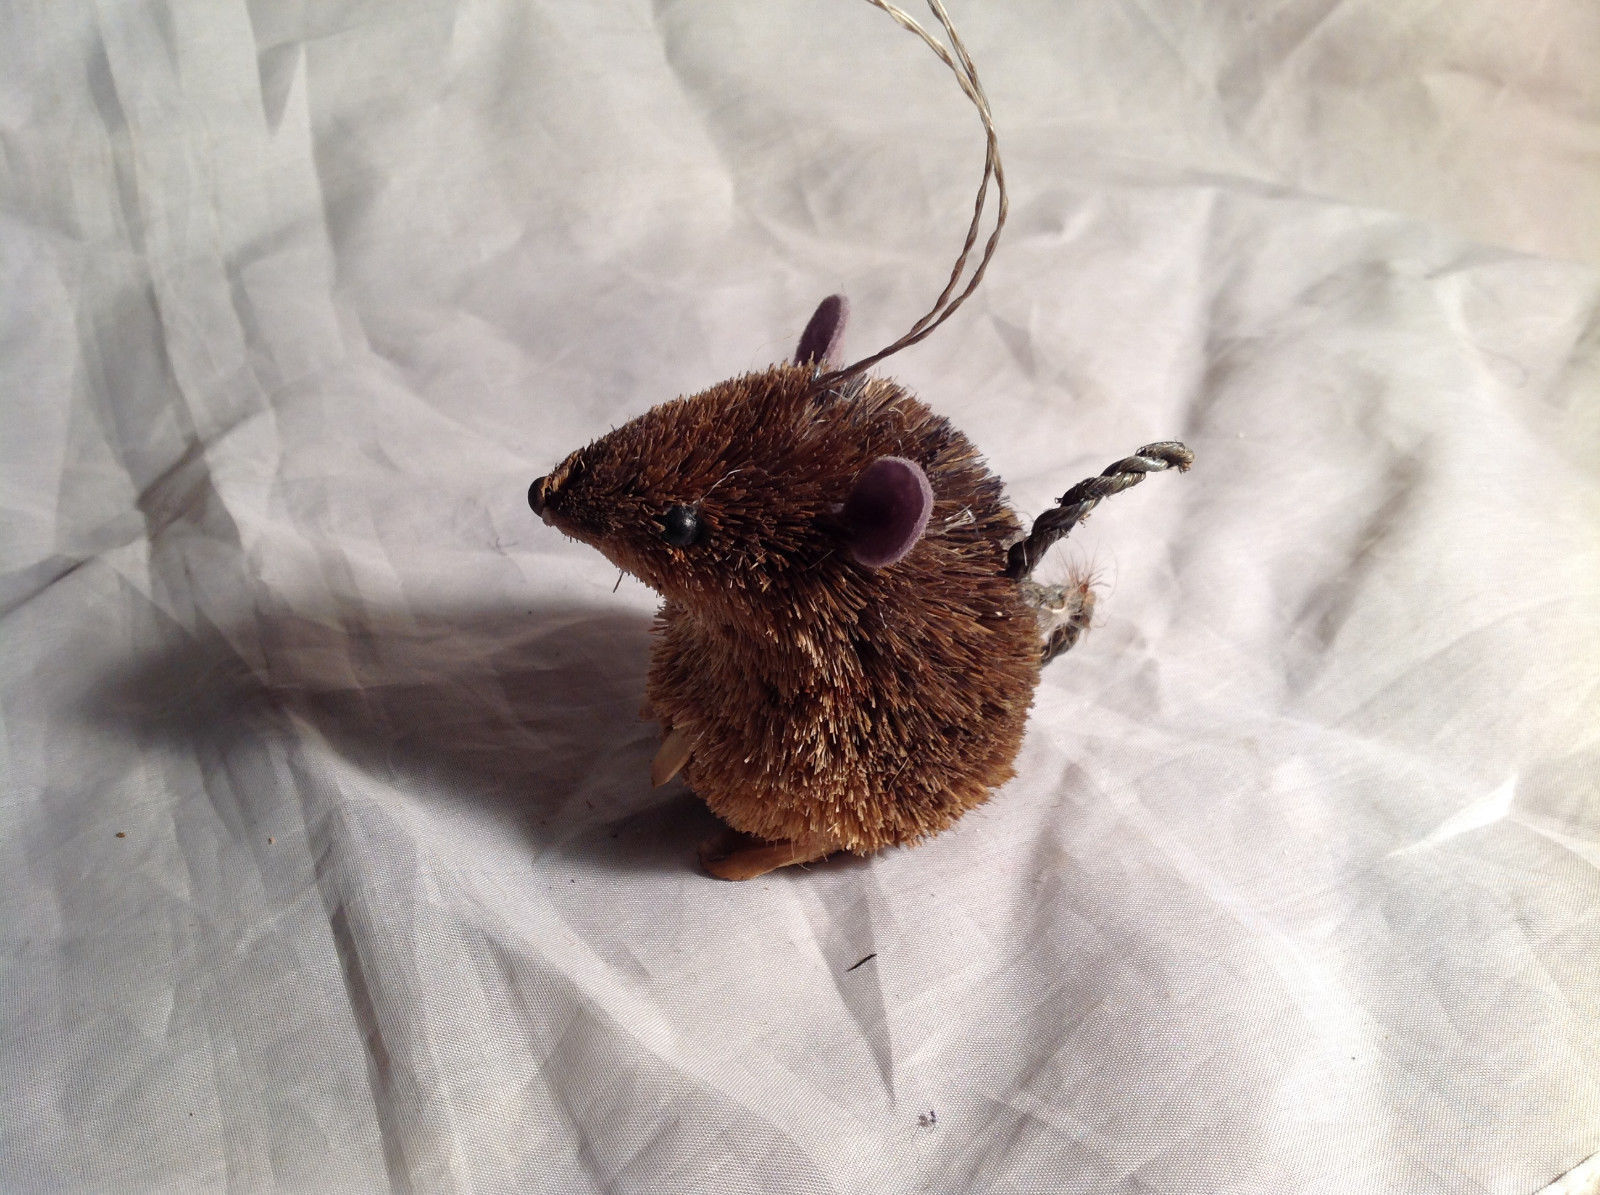 Palm Fiber Seated Mouse Brush Animal Eco Fiber Sustainable Ornament